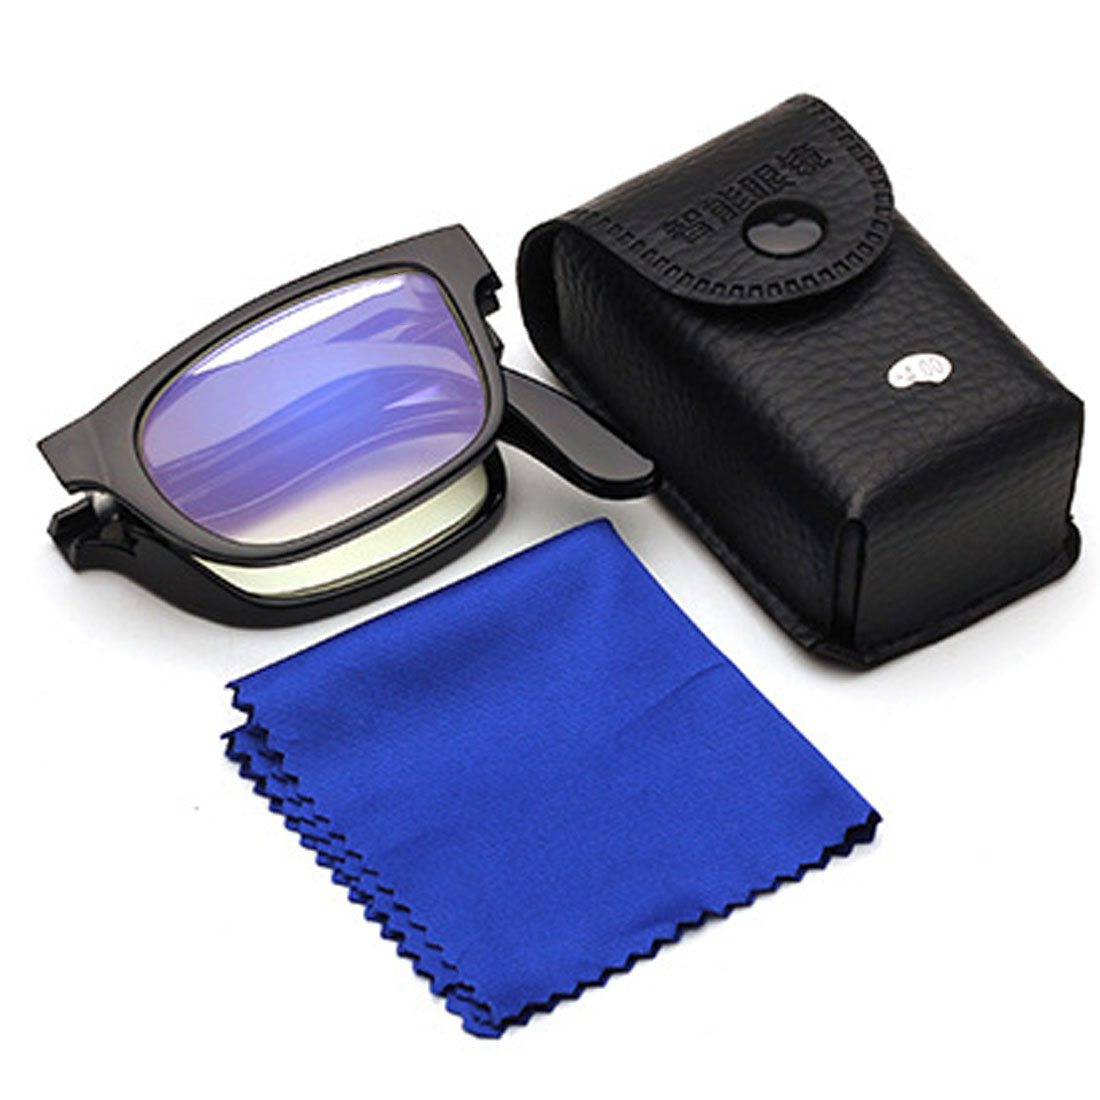 Unisex Vision Glasses Magnifier Magnifying Eyewear Reading Glasses Portable Gift For Parents Presbyopic 100-400 Degree